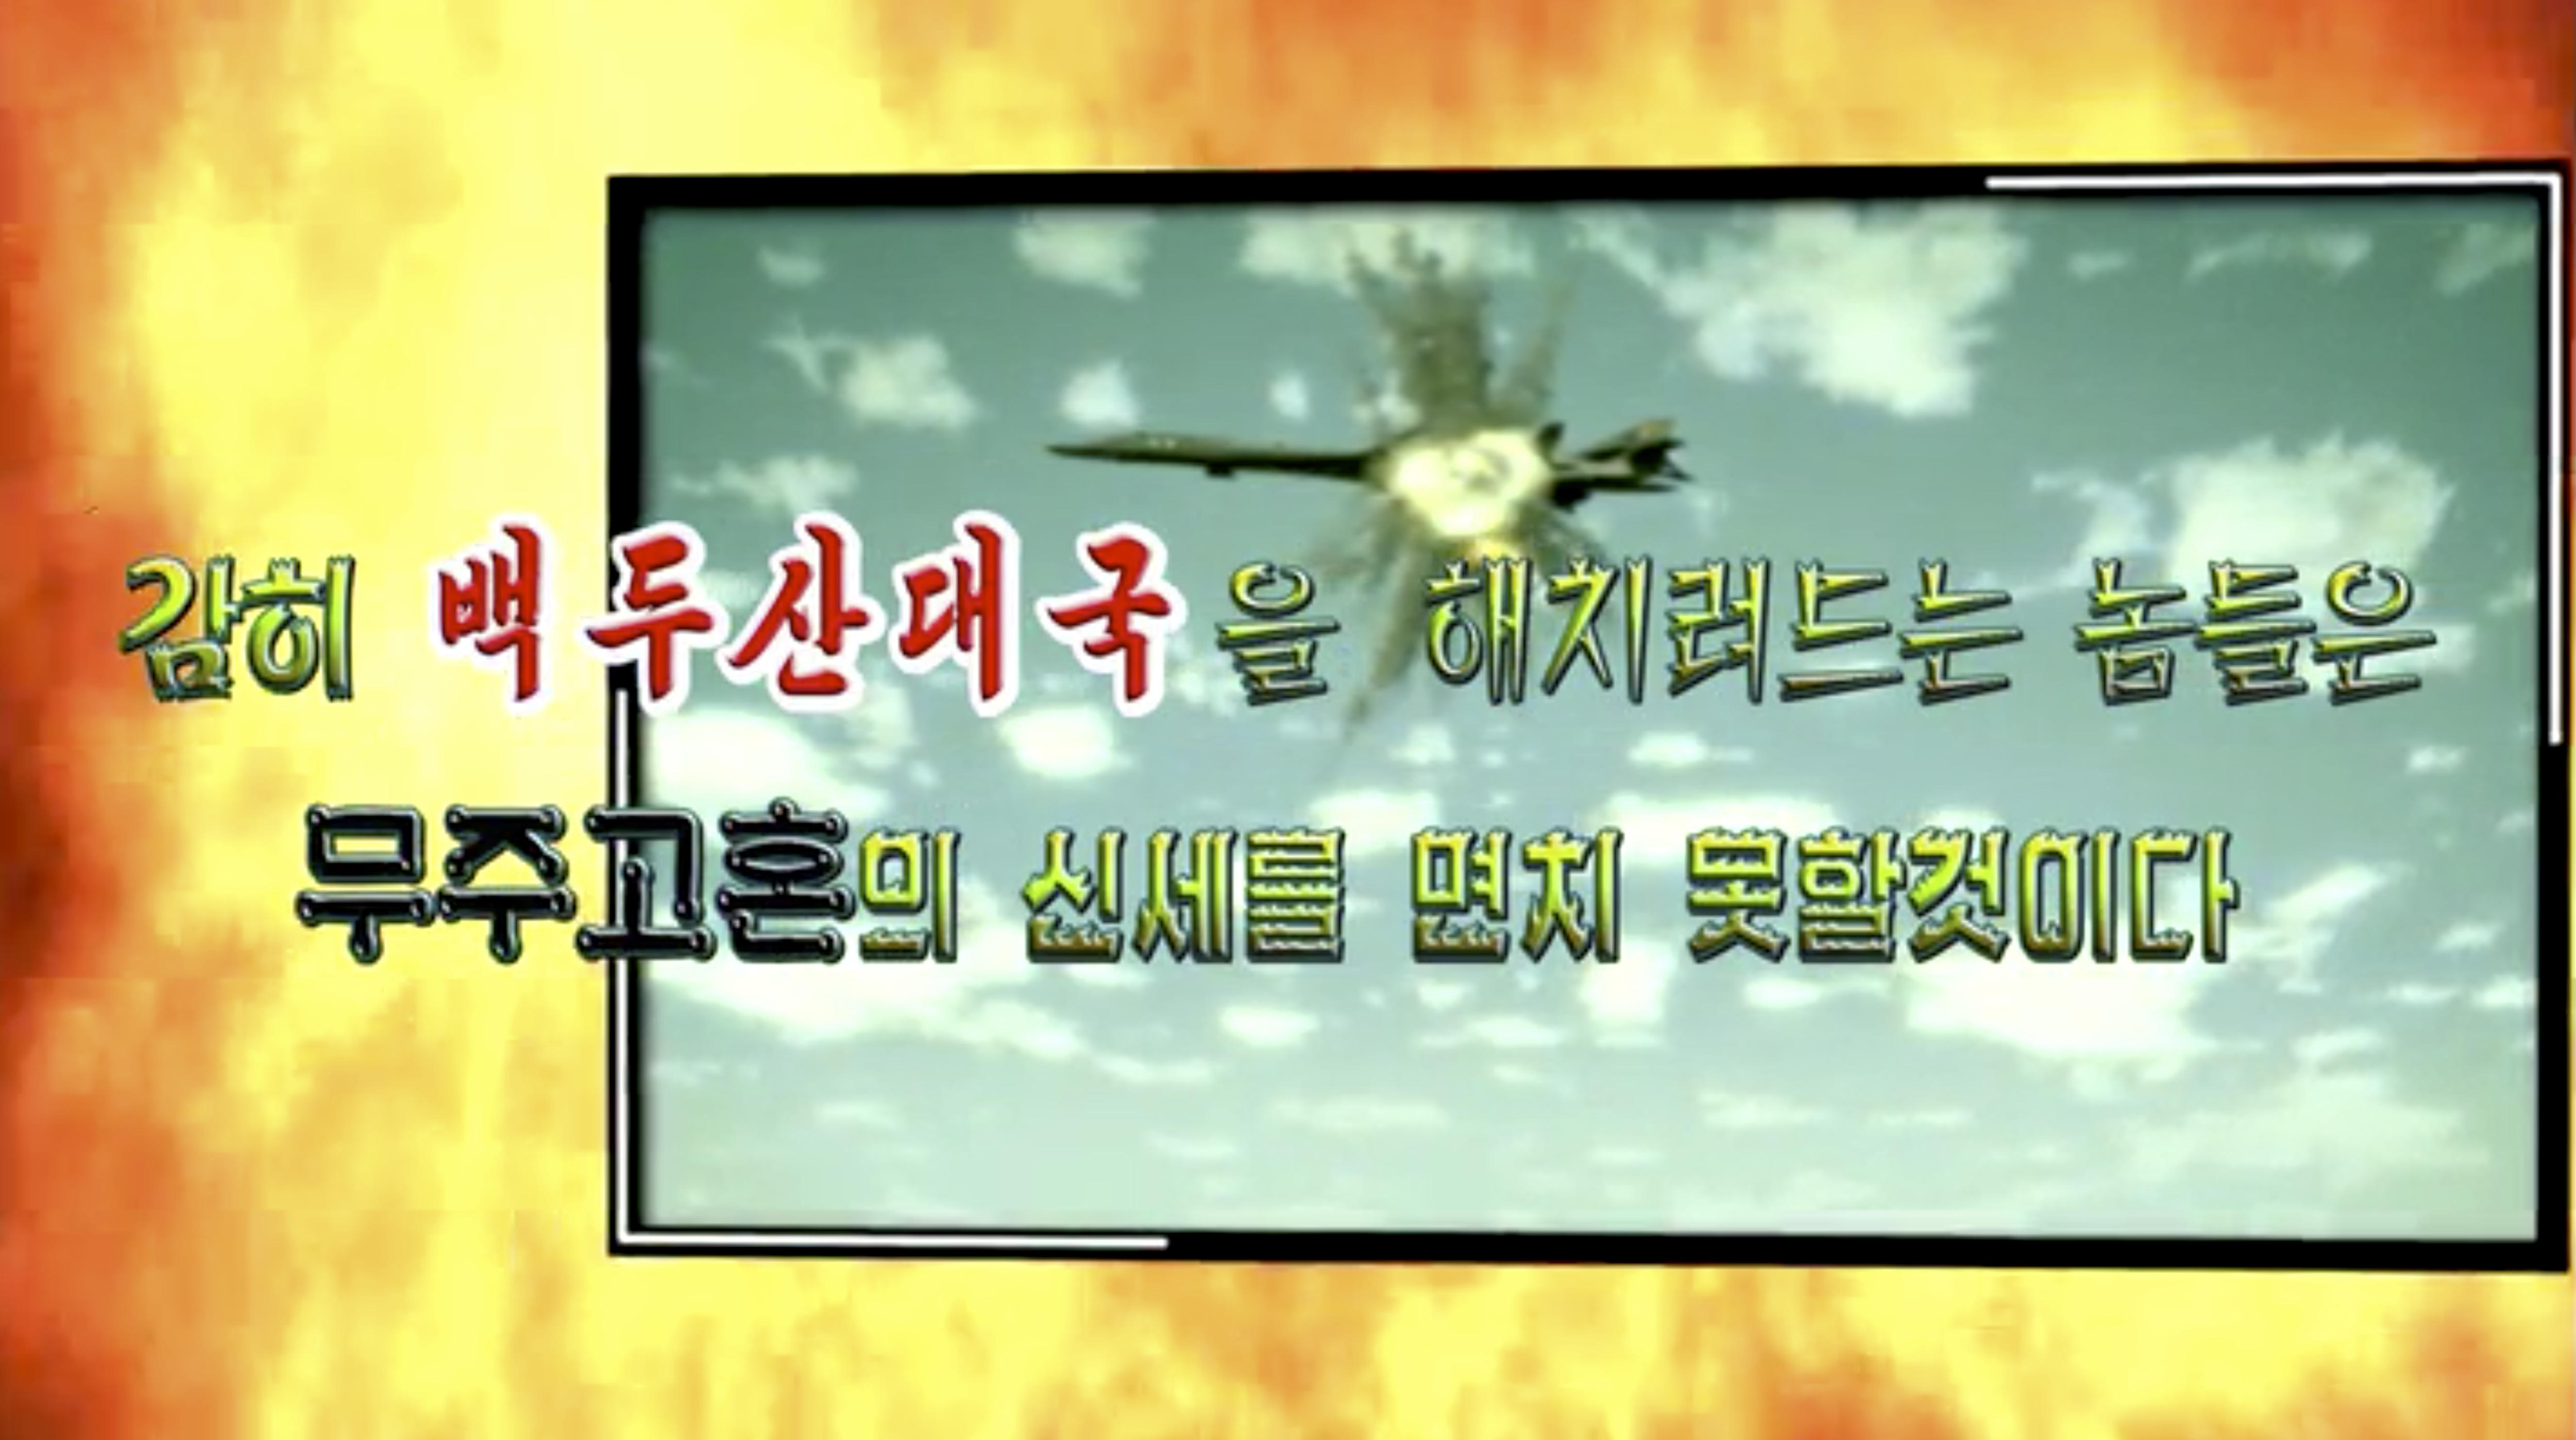 North Korea lacks ability, intent to attack US planes, experts say